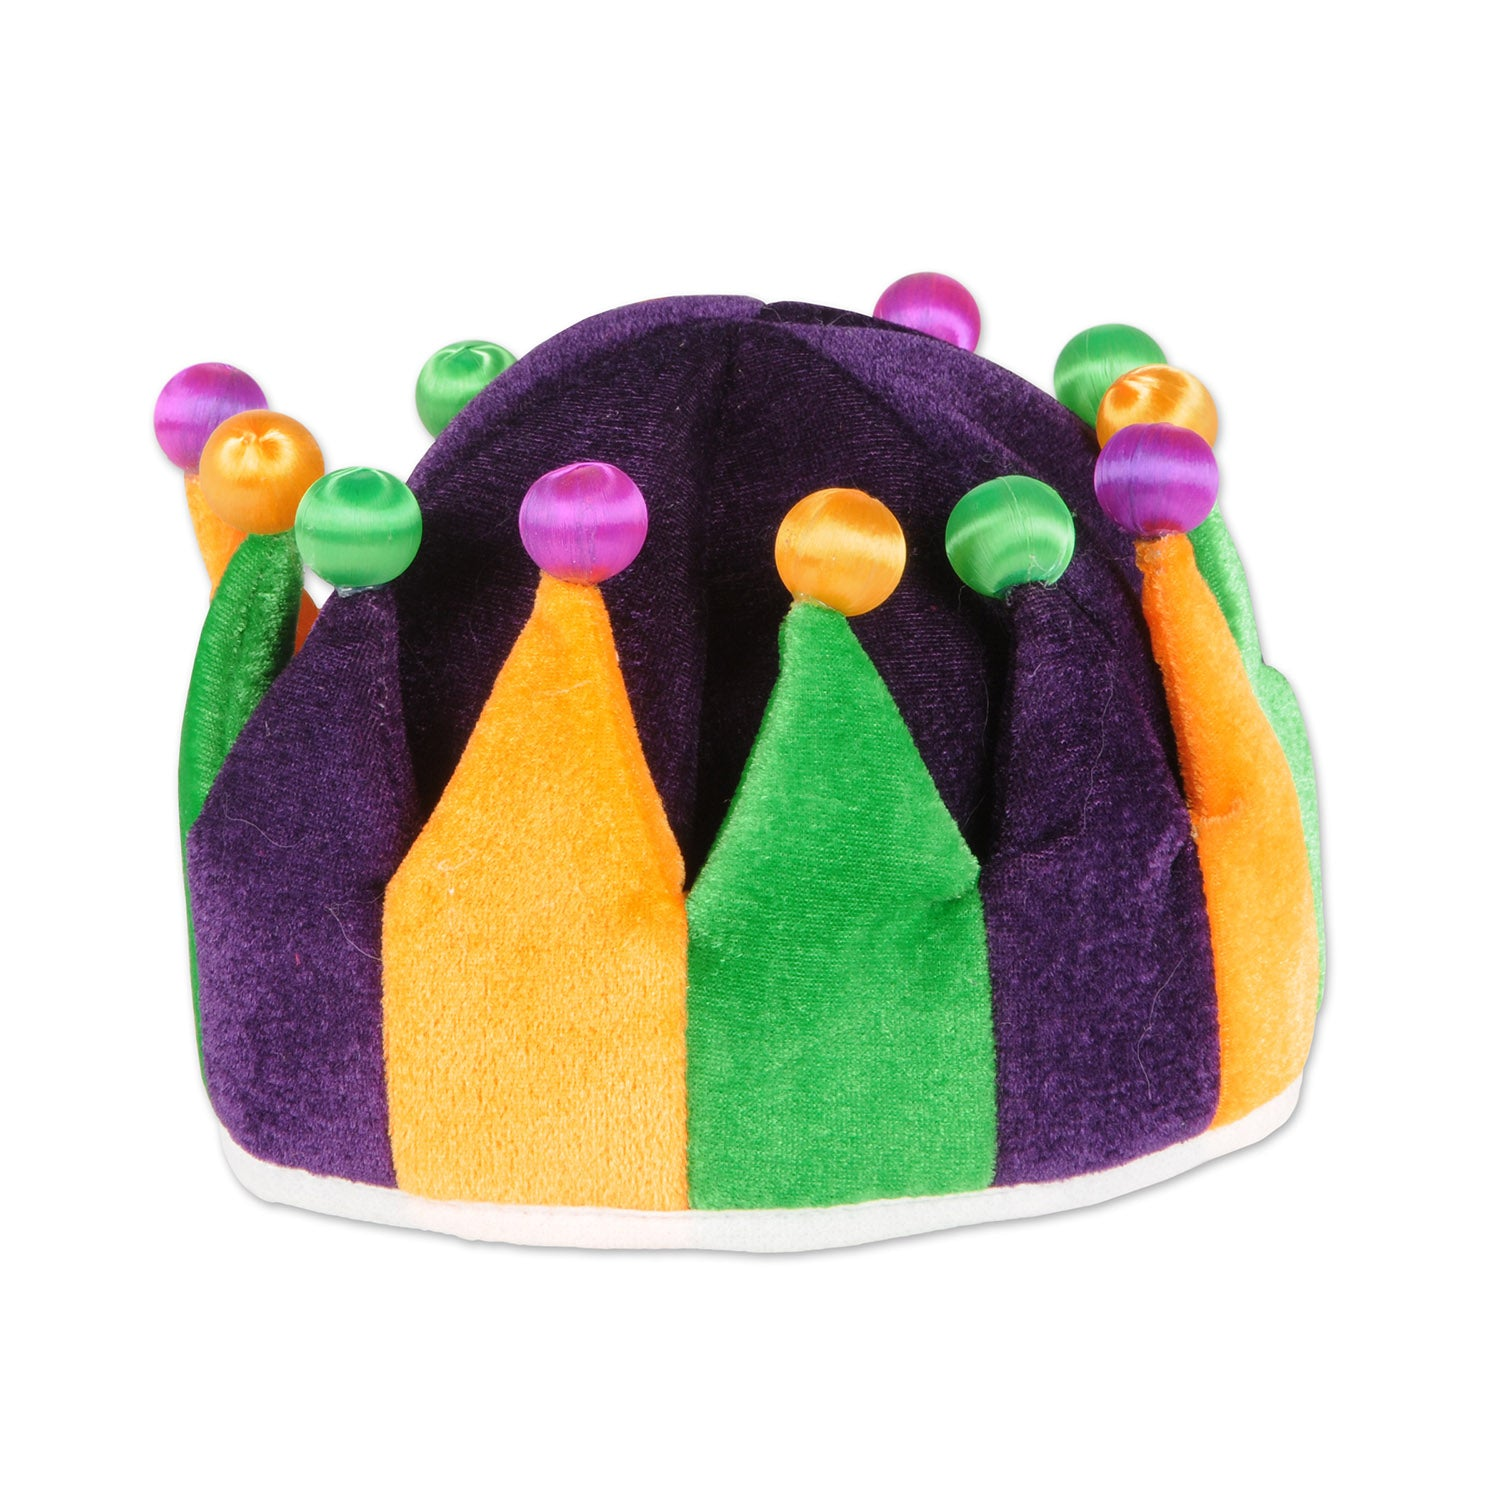 Plush Jester Crown by Beistle - Mardi Gras Theme Decorations